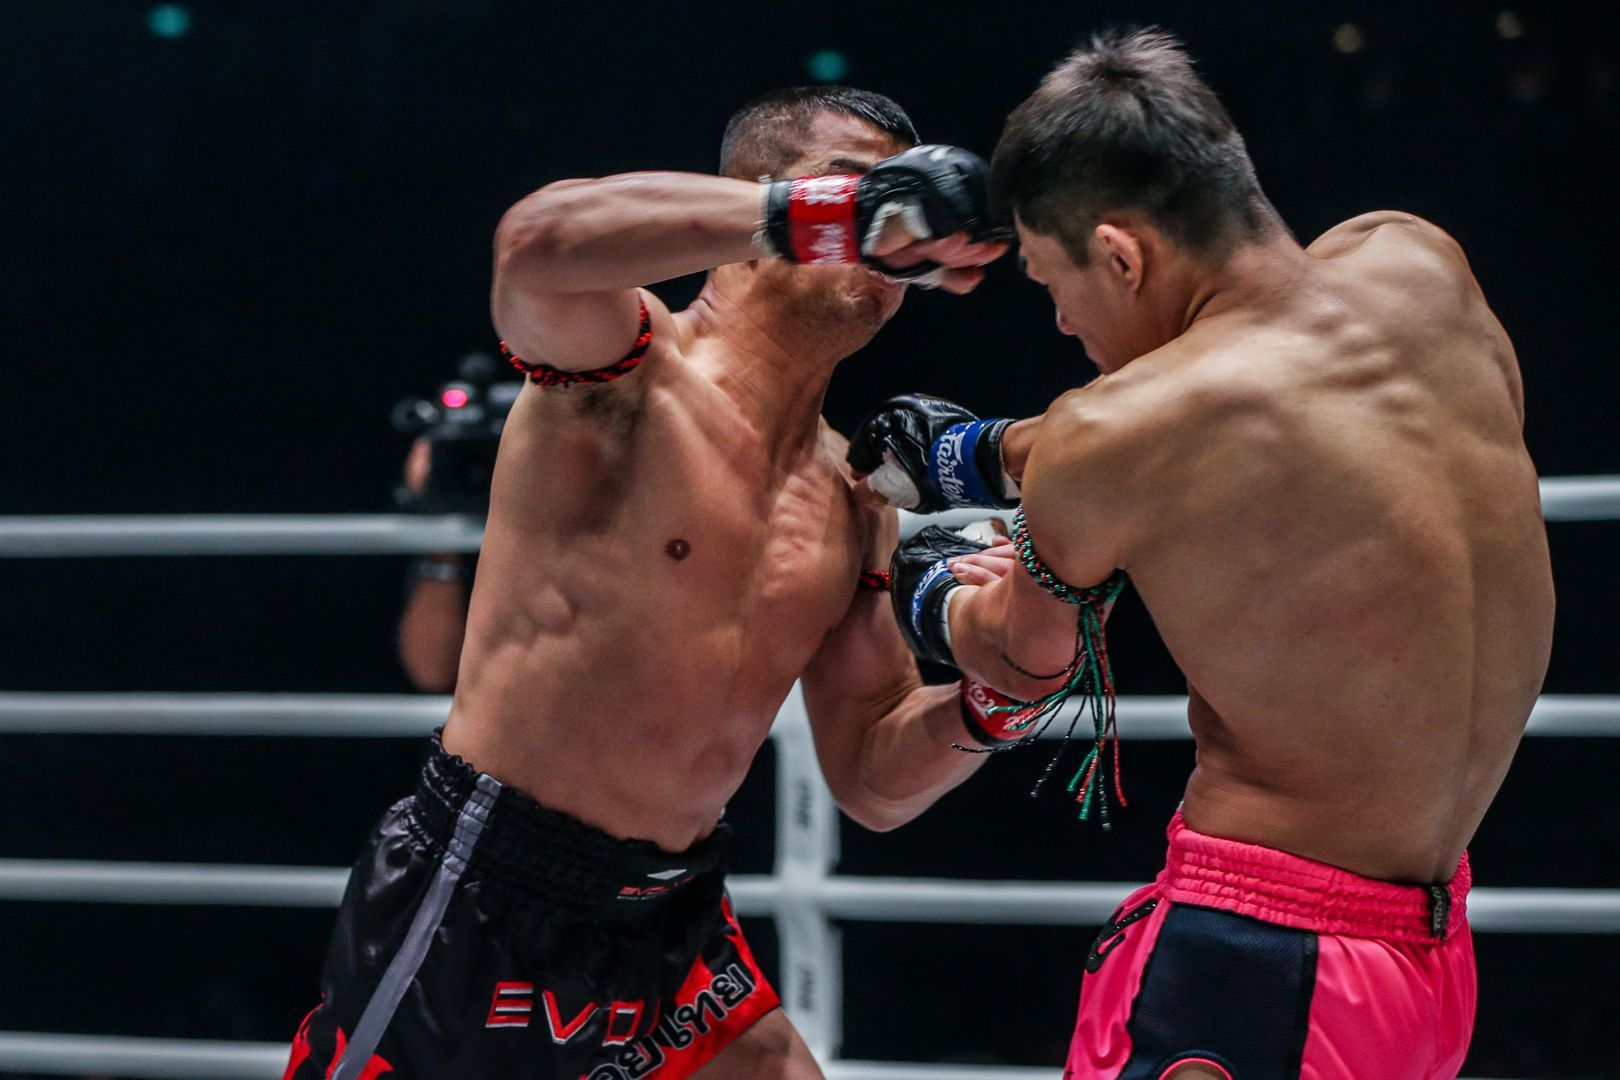 ONE Bantamweight Muay Thai World Champion Nong-O Gaiyanghadao hits a clean cross on Saemapetch Fairtex